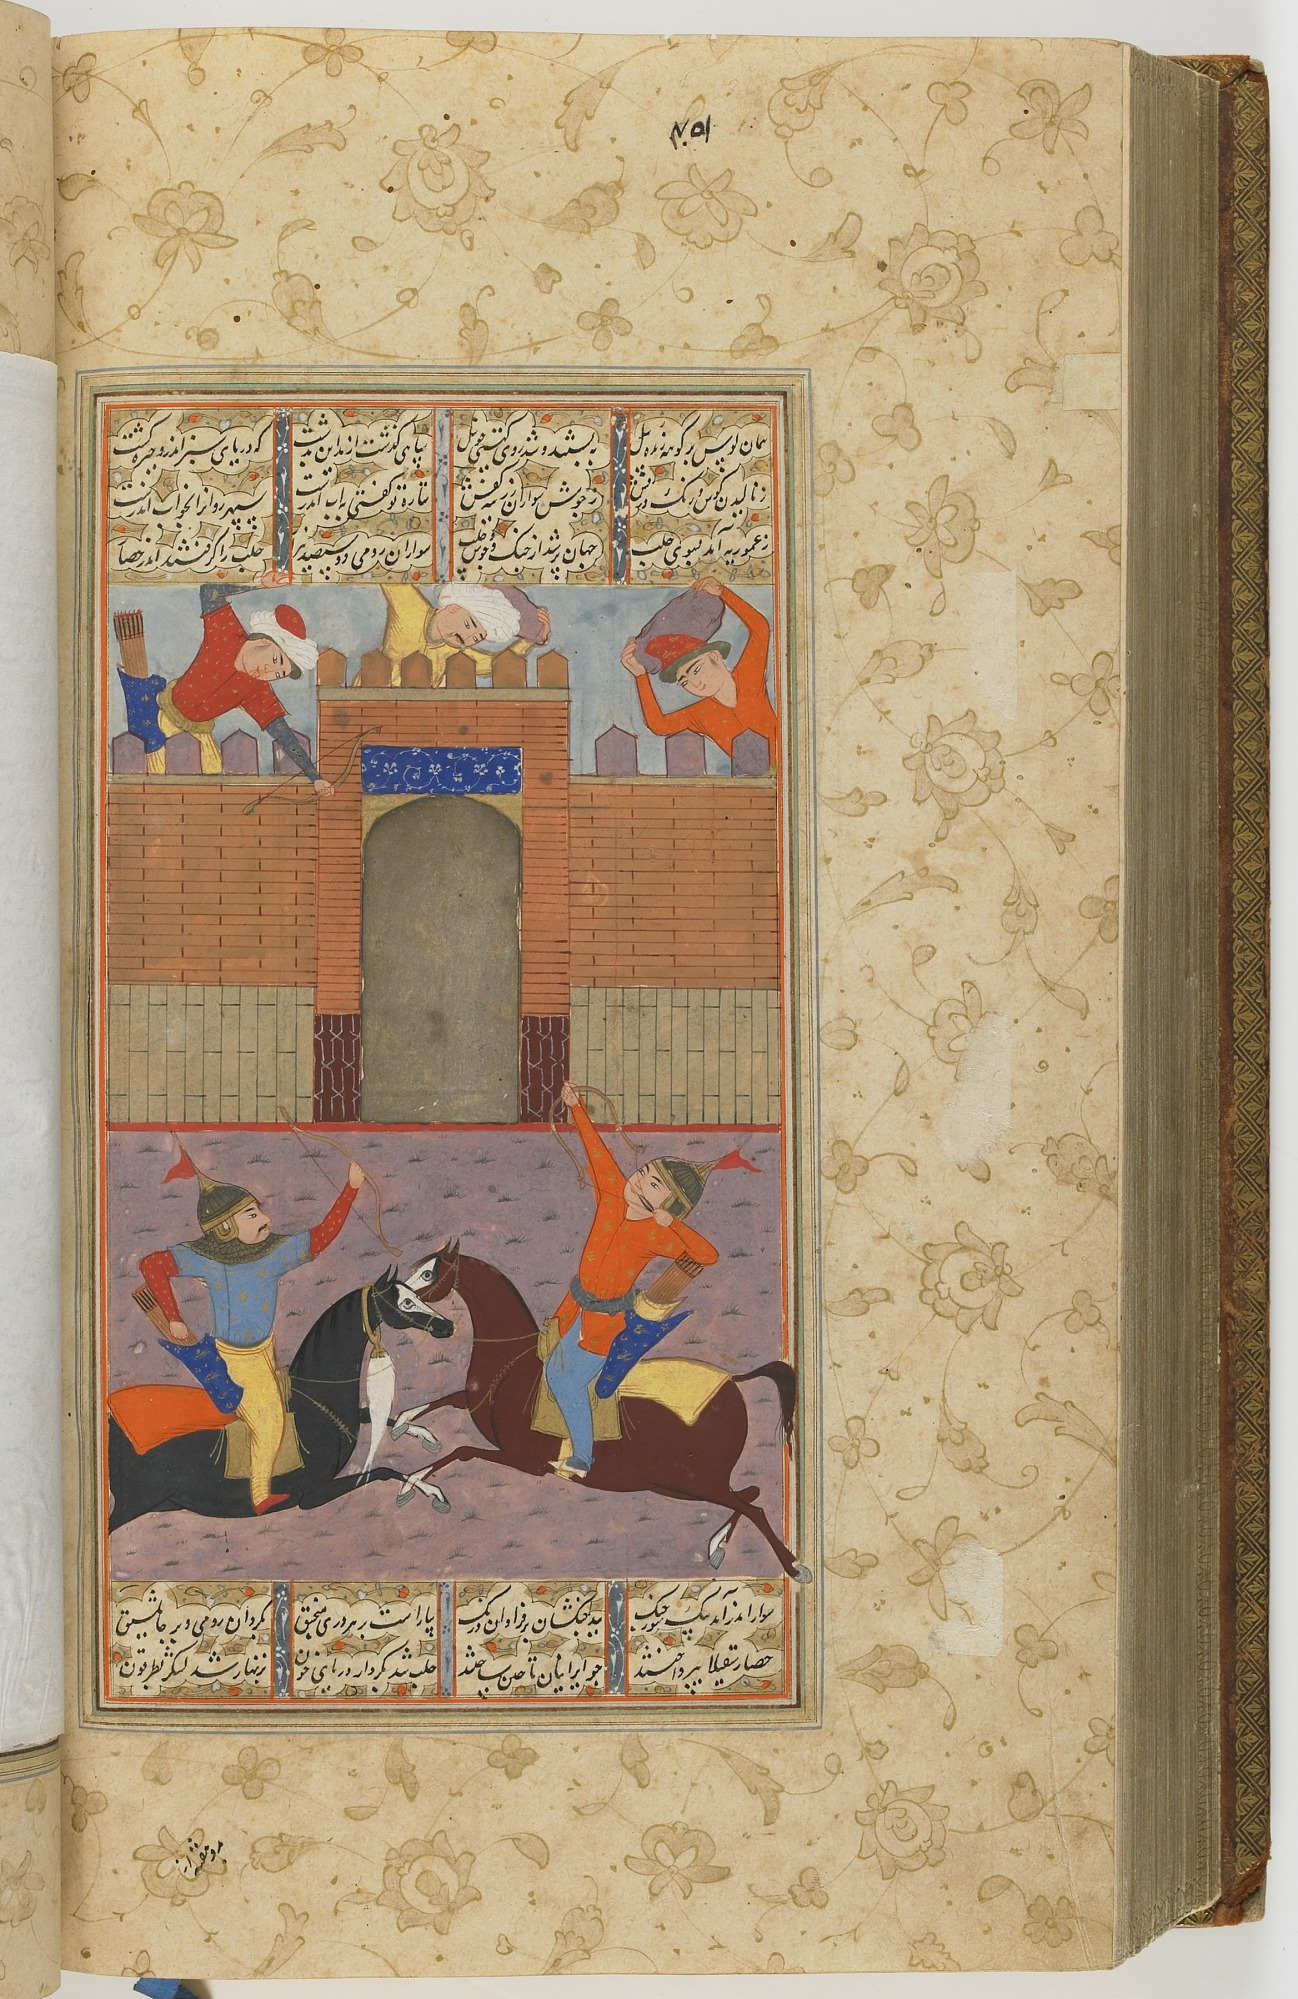 The Shahnama (Book of kings) by Firdausi (d. 1020)